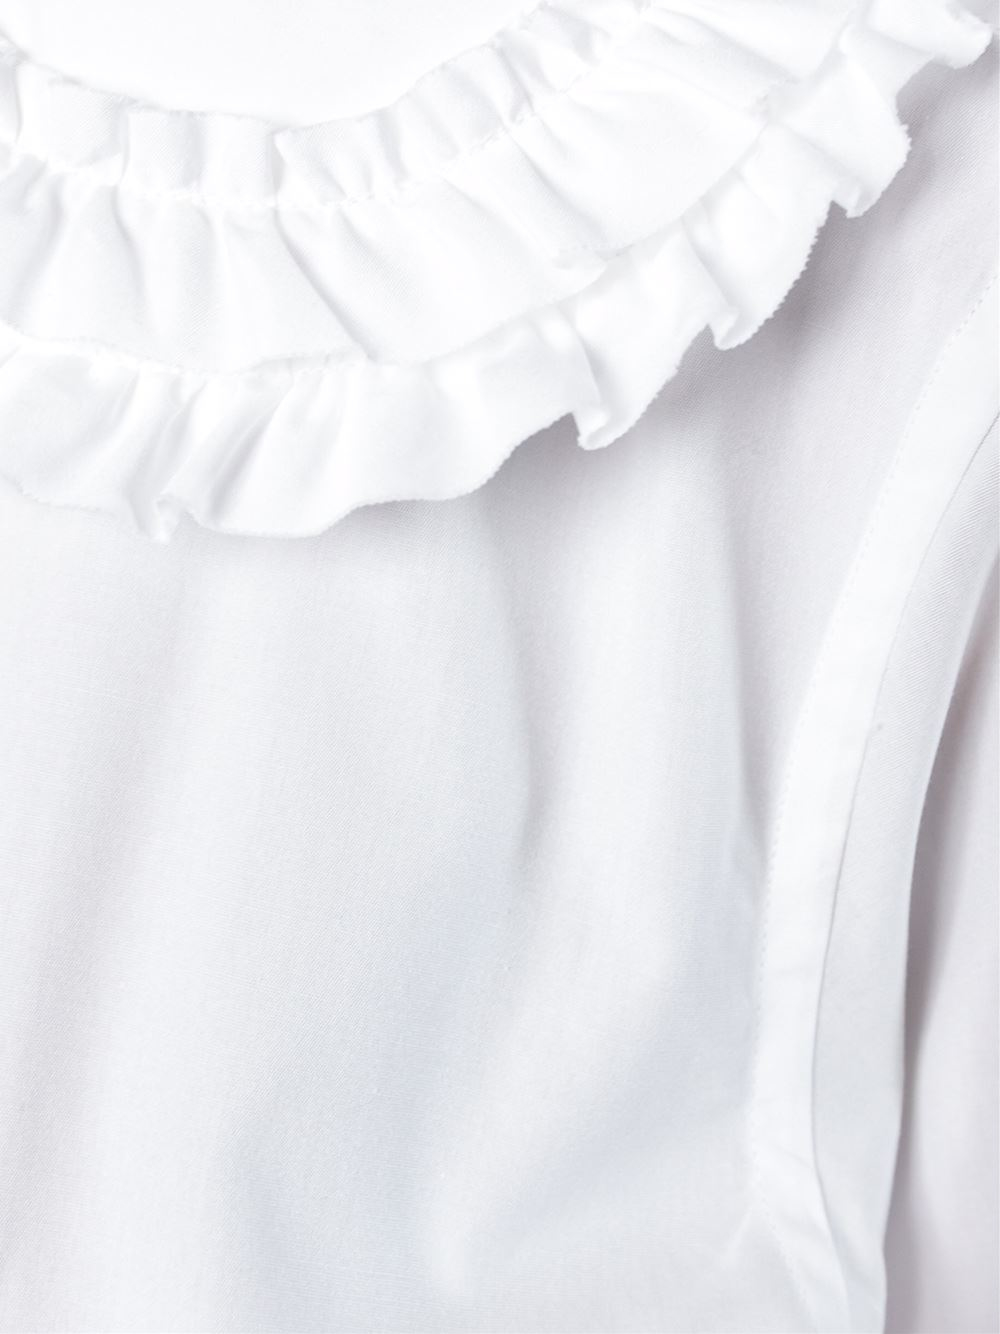 Comme des gar ons peter pan collar blouse in white lyst for White cotton shirt peter pan collar